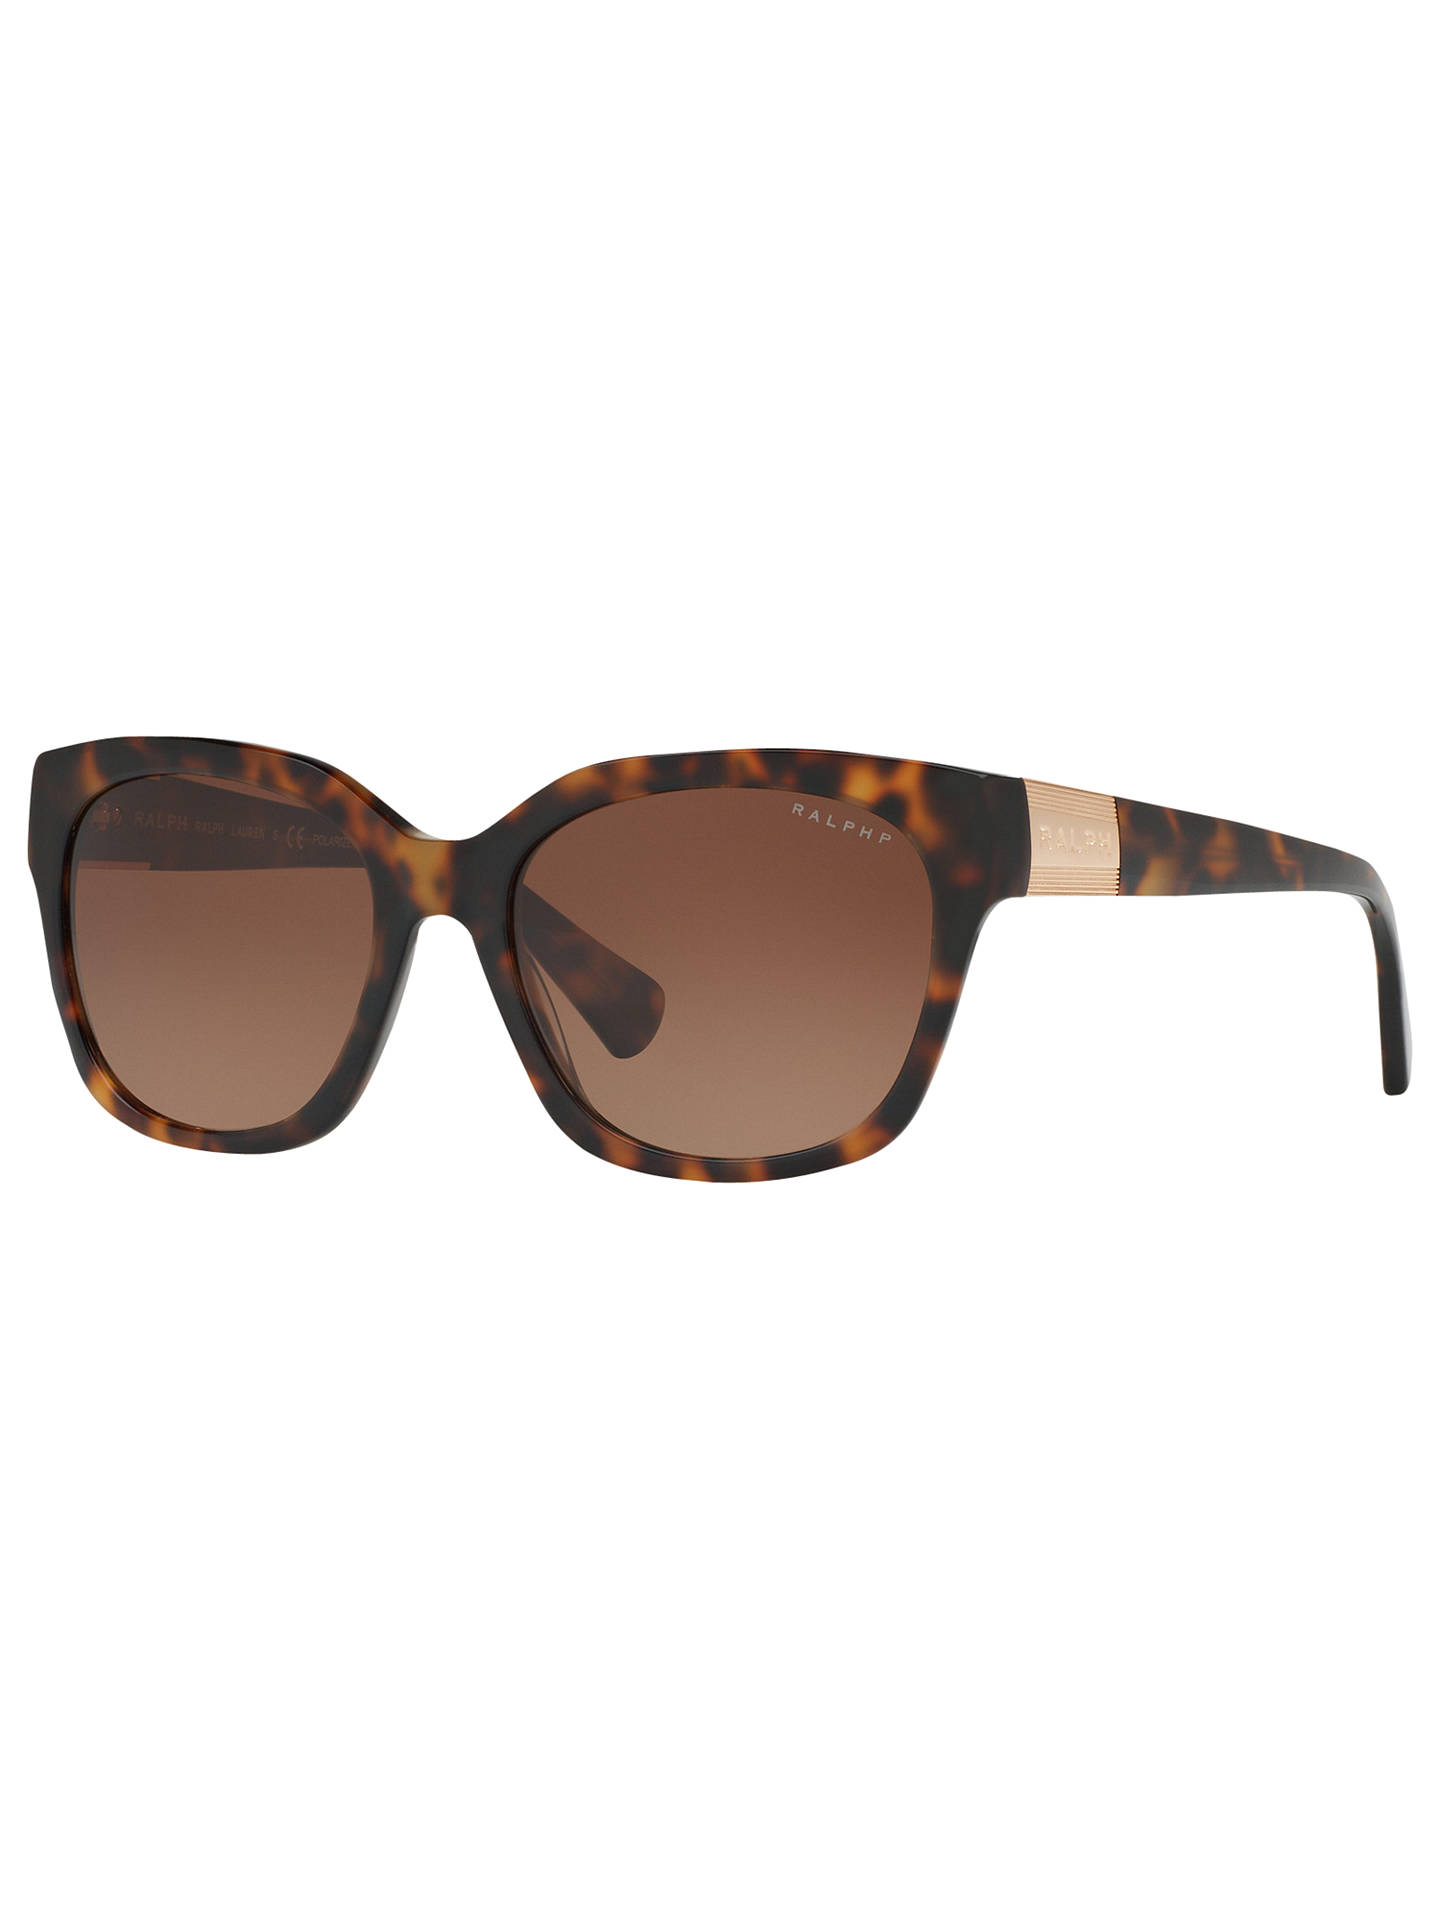 765eabe21e9 Ralph RA5221 Polarised Square Sunglasses at John Lewis   Partners